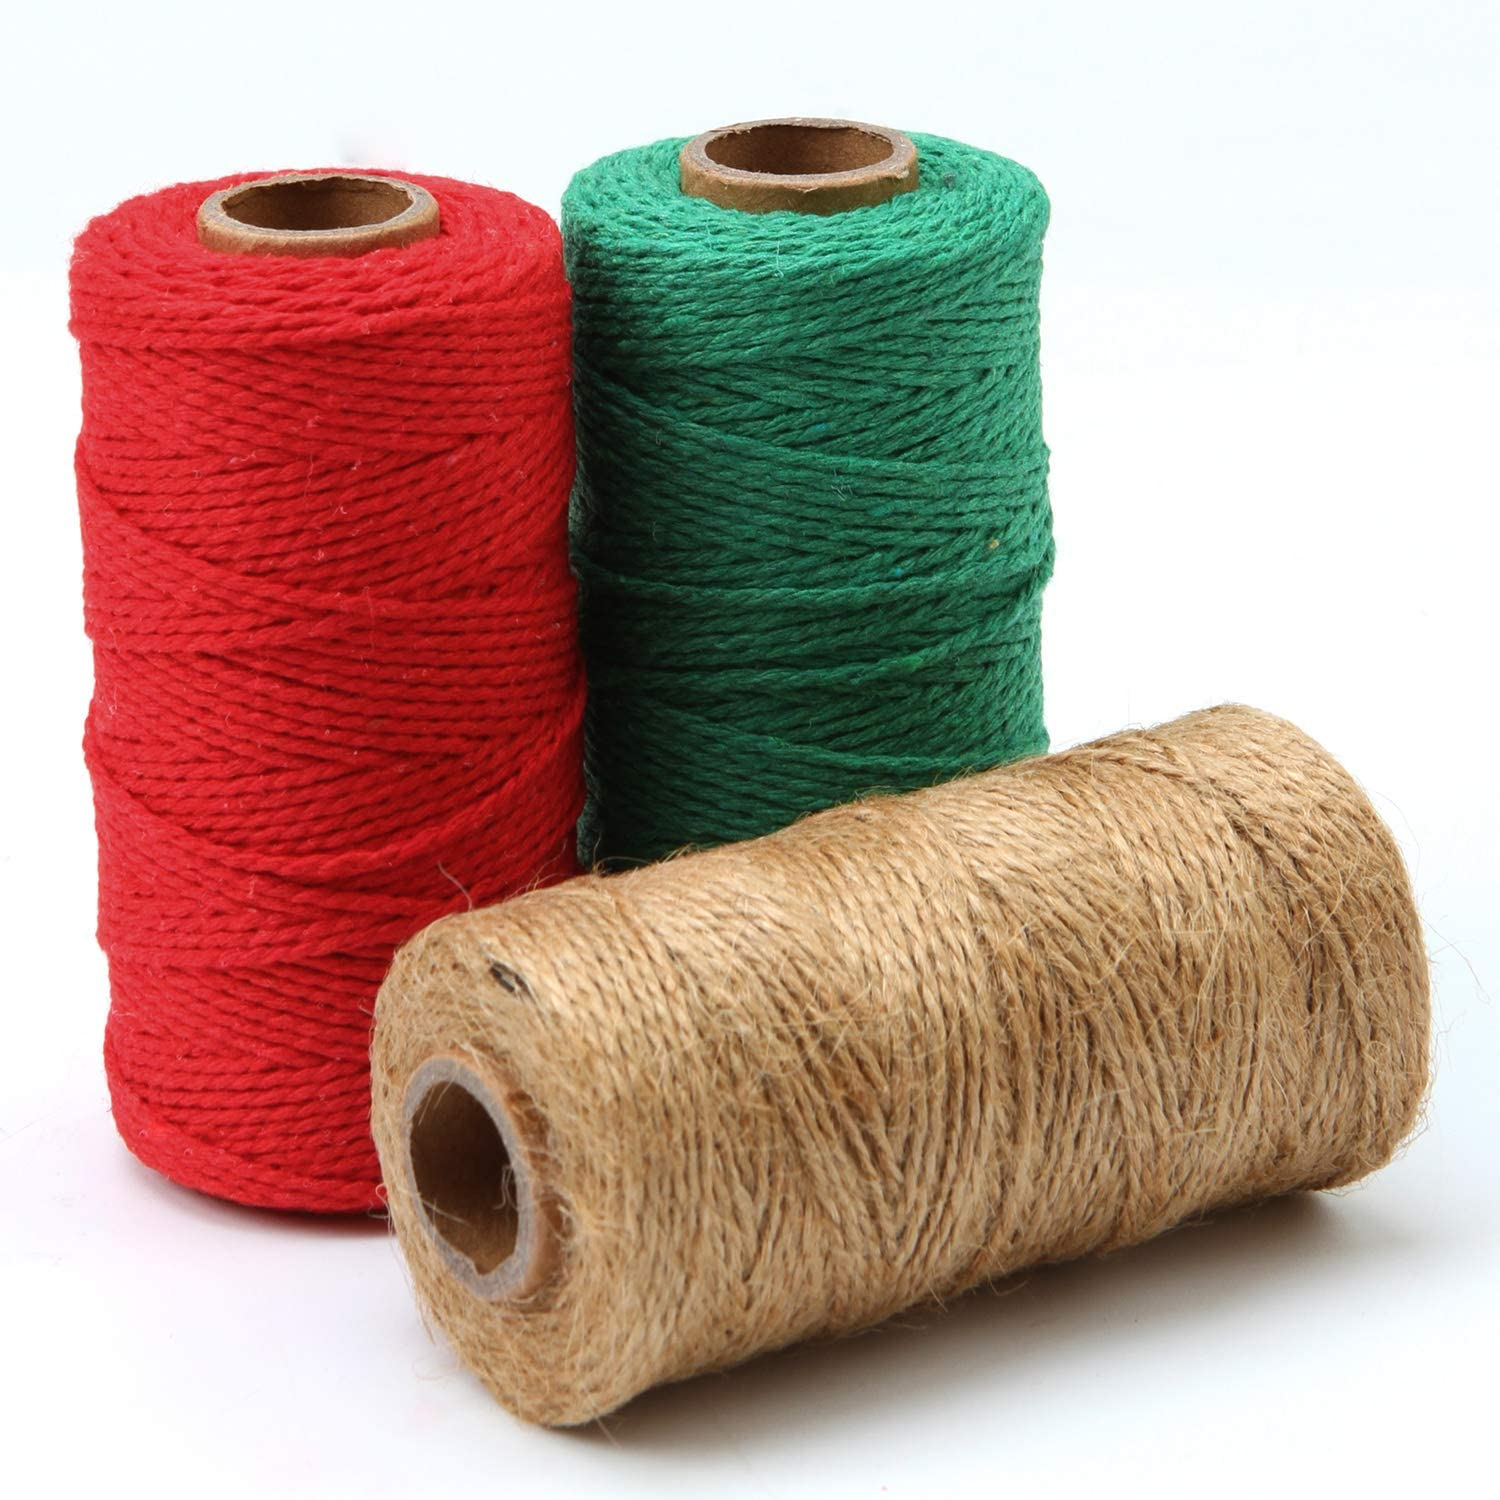 Green,Red,Natural Resinta 3 Rolls 984 Feet Christmas Twine Thick Jute String Rope Cotton Baker Twine for DIY Craft Christmas Gift Wrapping